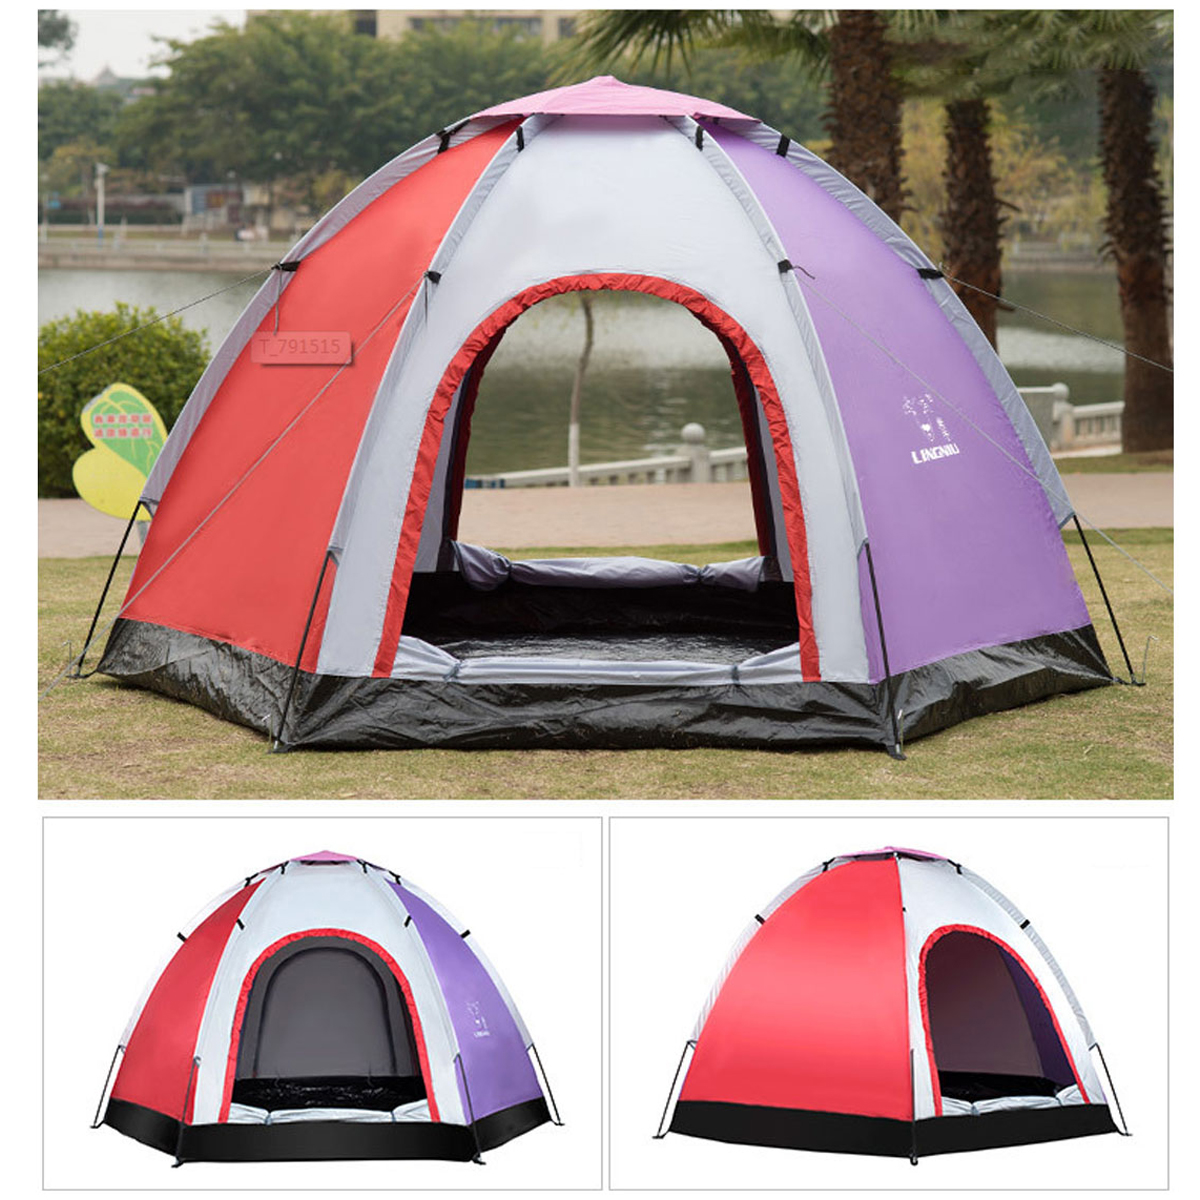 Outdoor 5-6 People Pop-Up Camping Tent Waterproof UV Pr